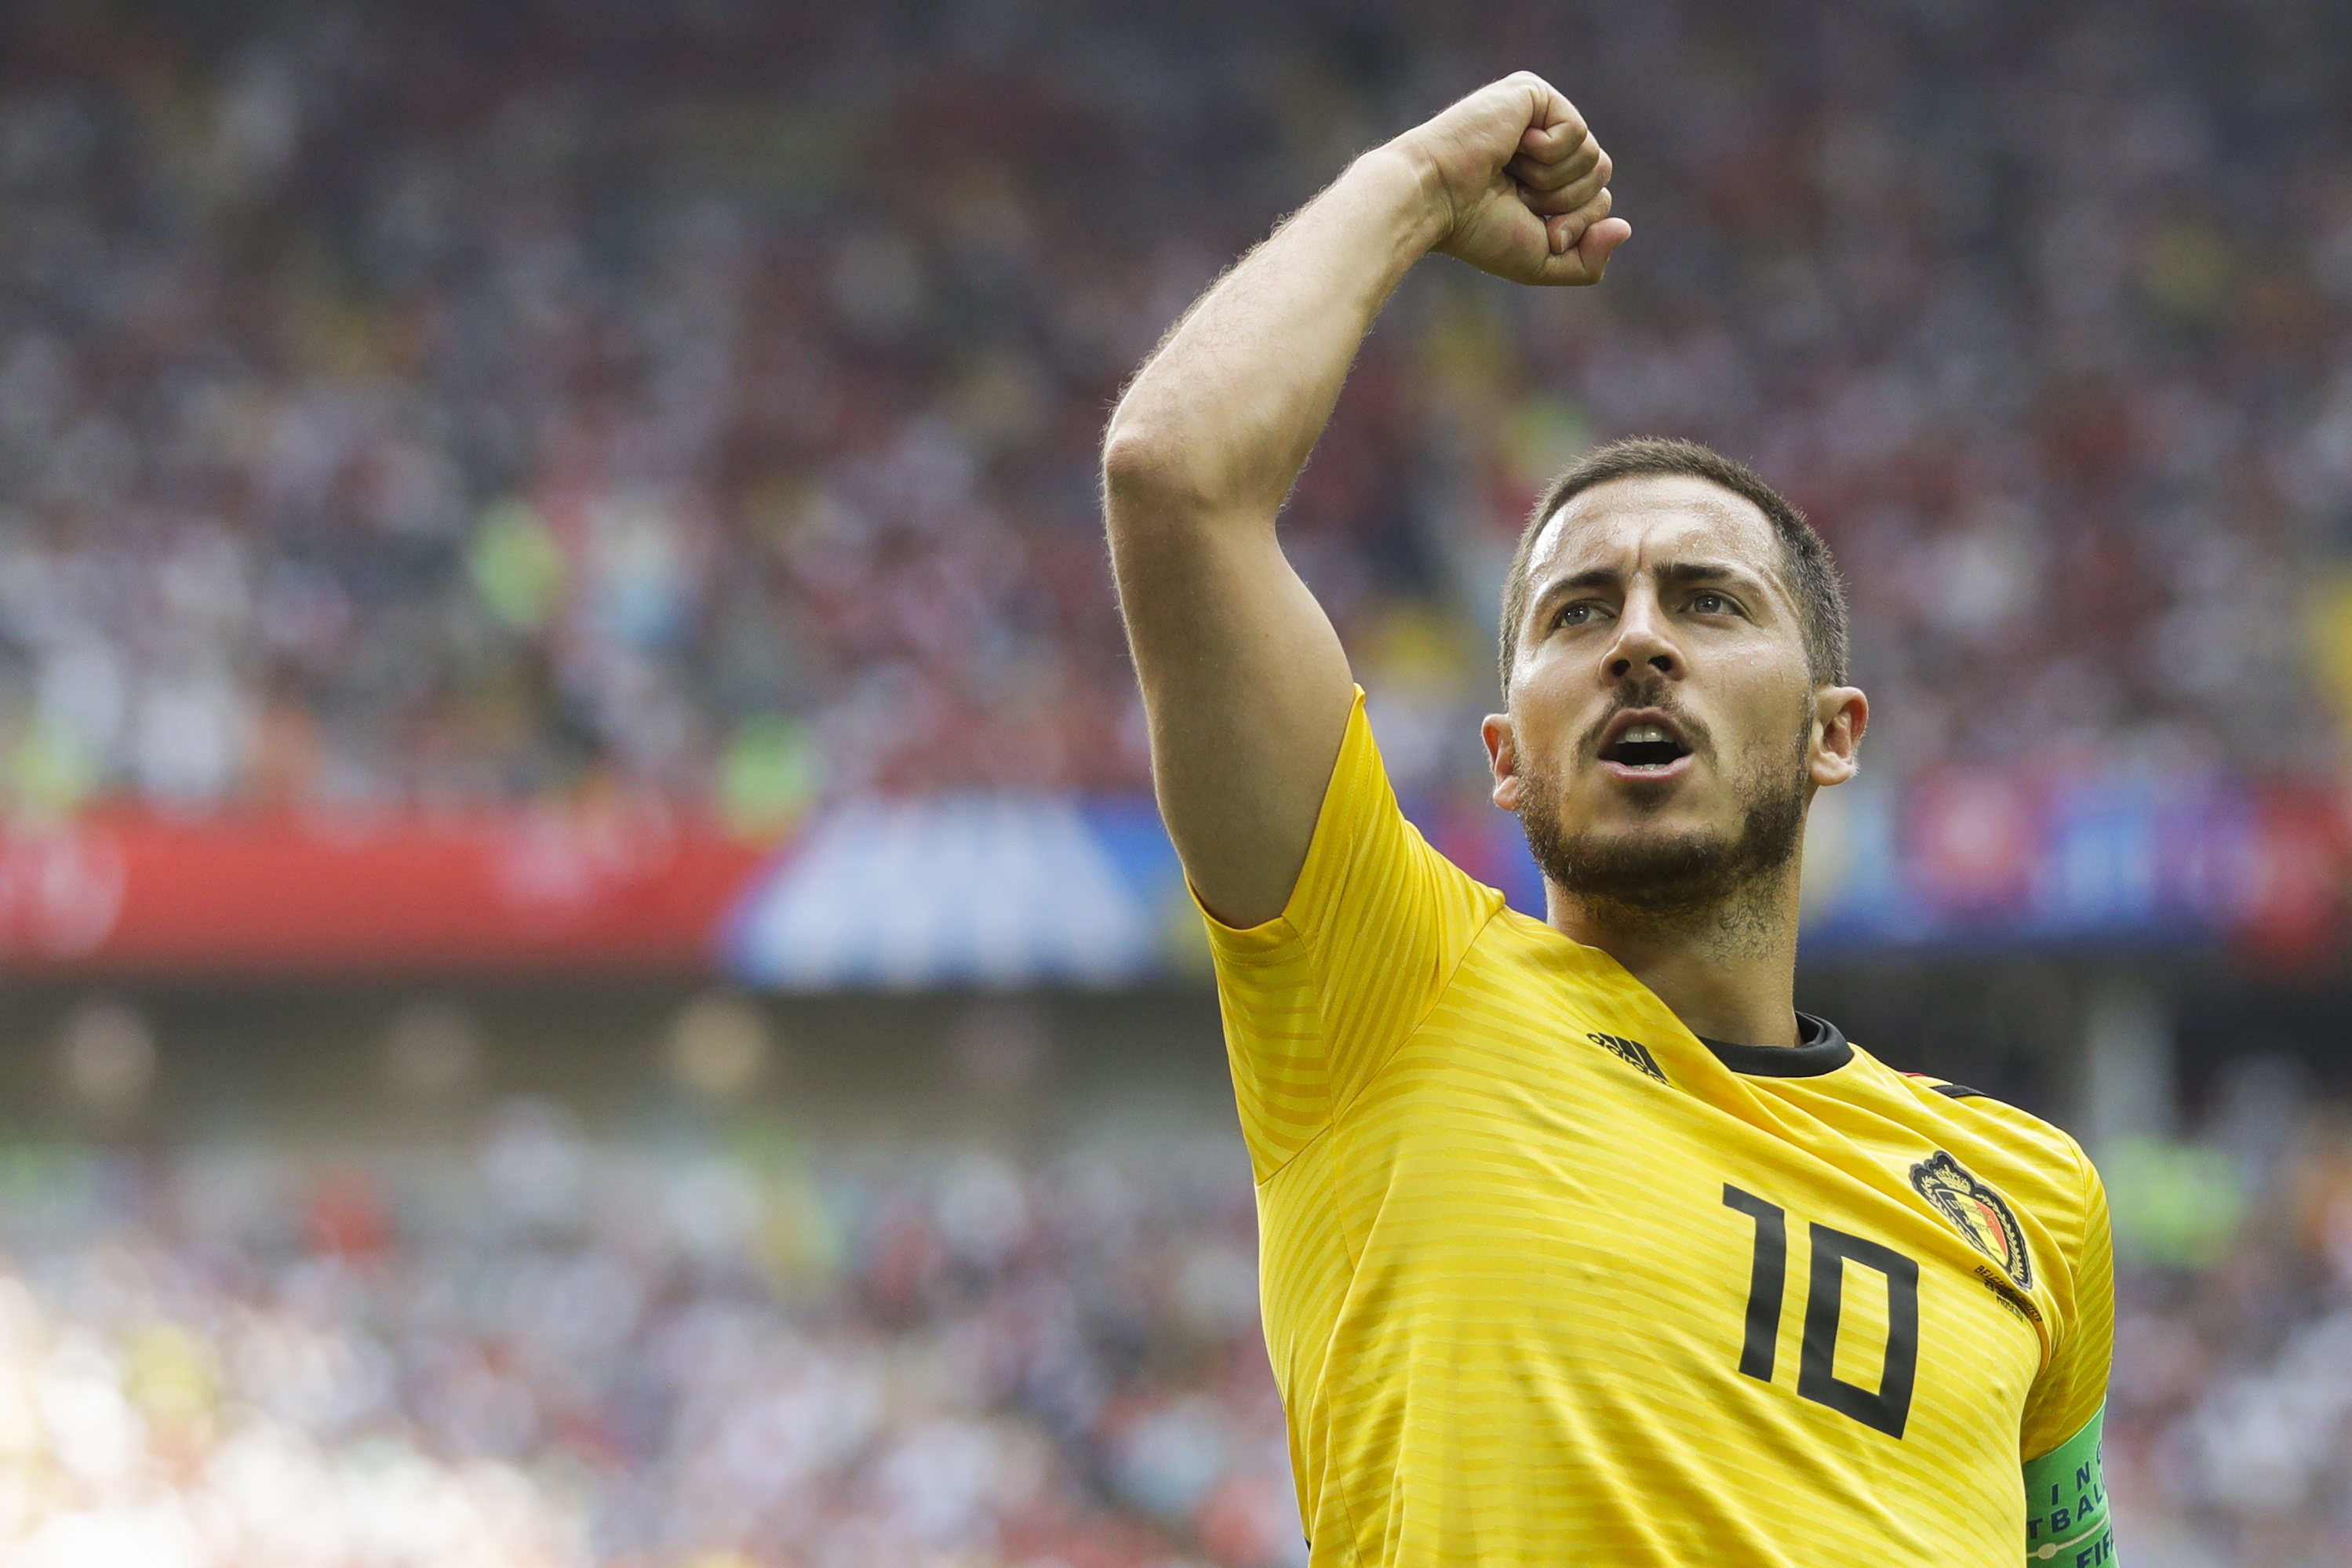 "<div class=""meta image-caption""><div class=""origin-logo origin-image none""><span>none</span></div><span class=""caption-text"">Belgium's Eden Hazard celebrates after scoring his side's fourth goal during the group G match between Belgium and Tunisia in the Spartak Stadium in Moscow, Saturday, June 23. (Matthias Schrader/AP Photo)</span></div>"